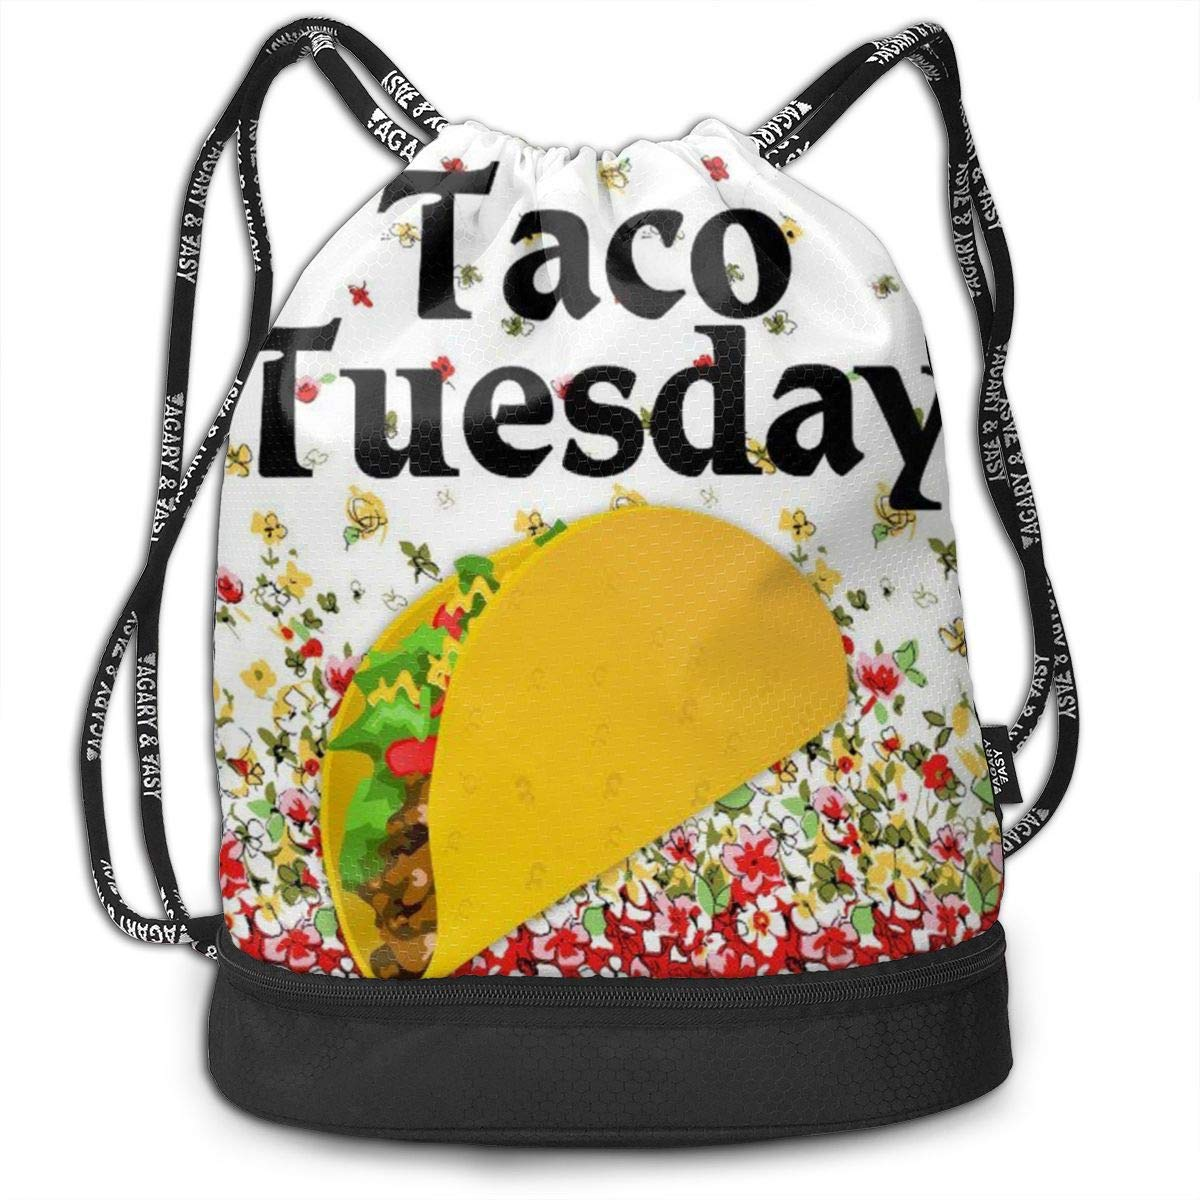 KLing Viajando Senderismo Swiming Beam Mochila Taco Tuesday Beam ...